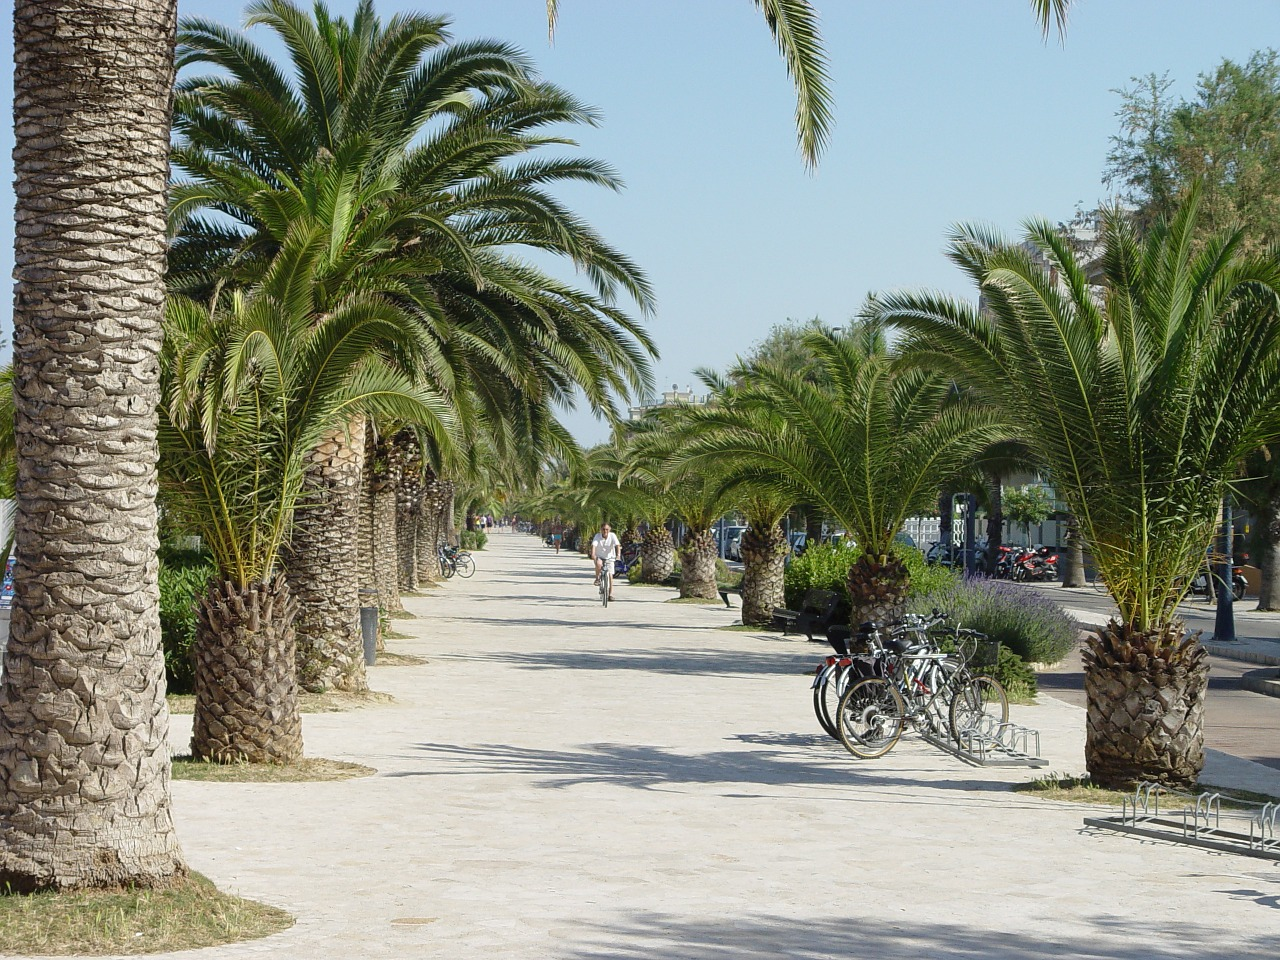 san benedetto del tronto promenade palm free photo